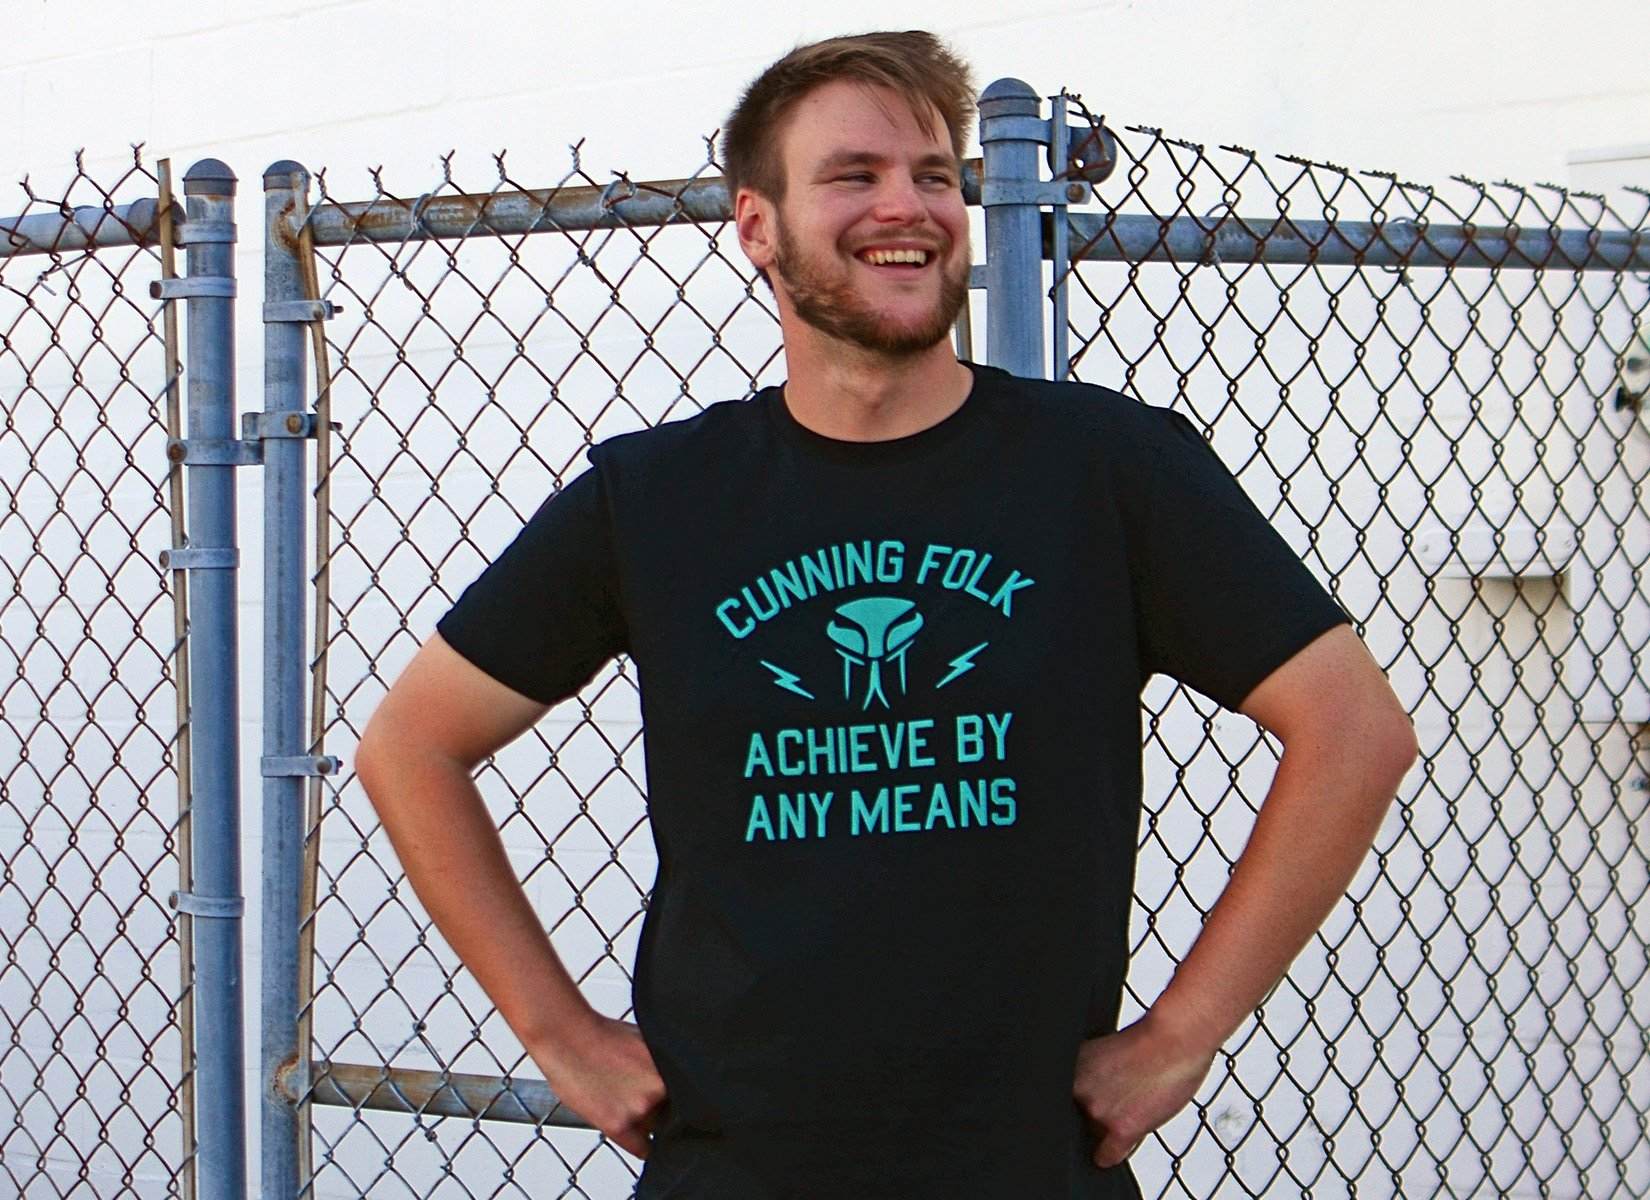 Cunning Folk Achieve By Any Means on Mens T-Shirt